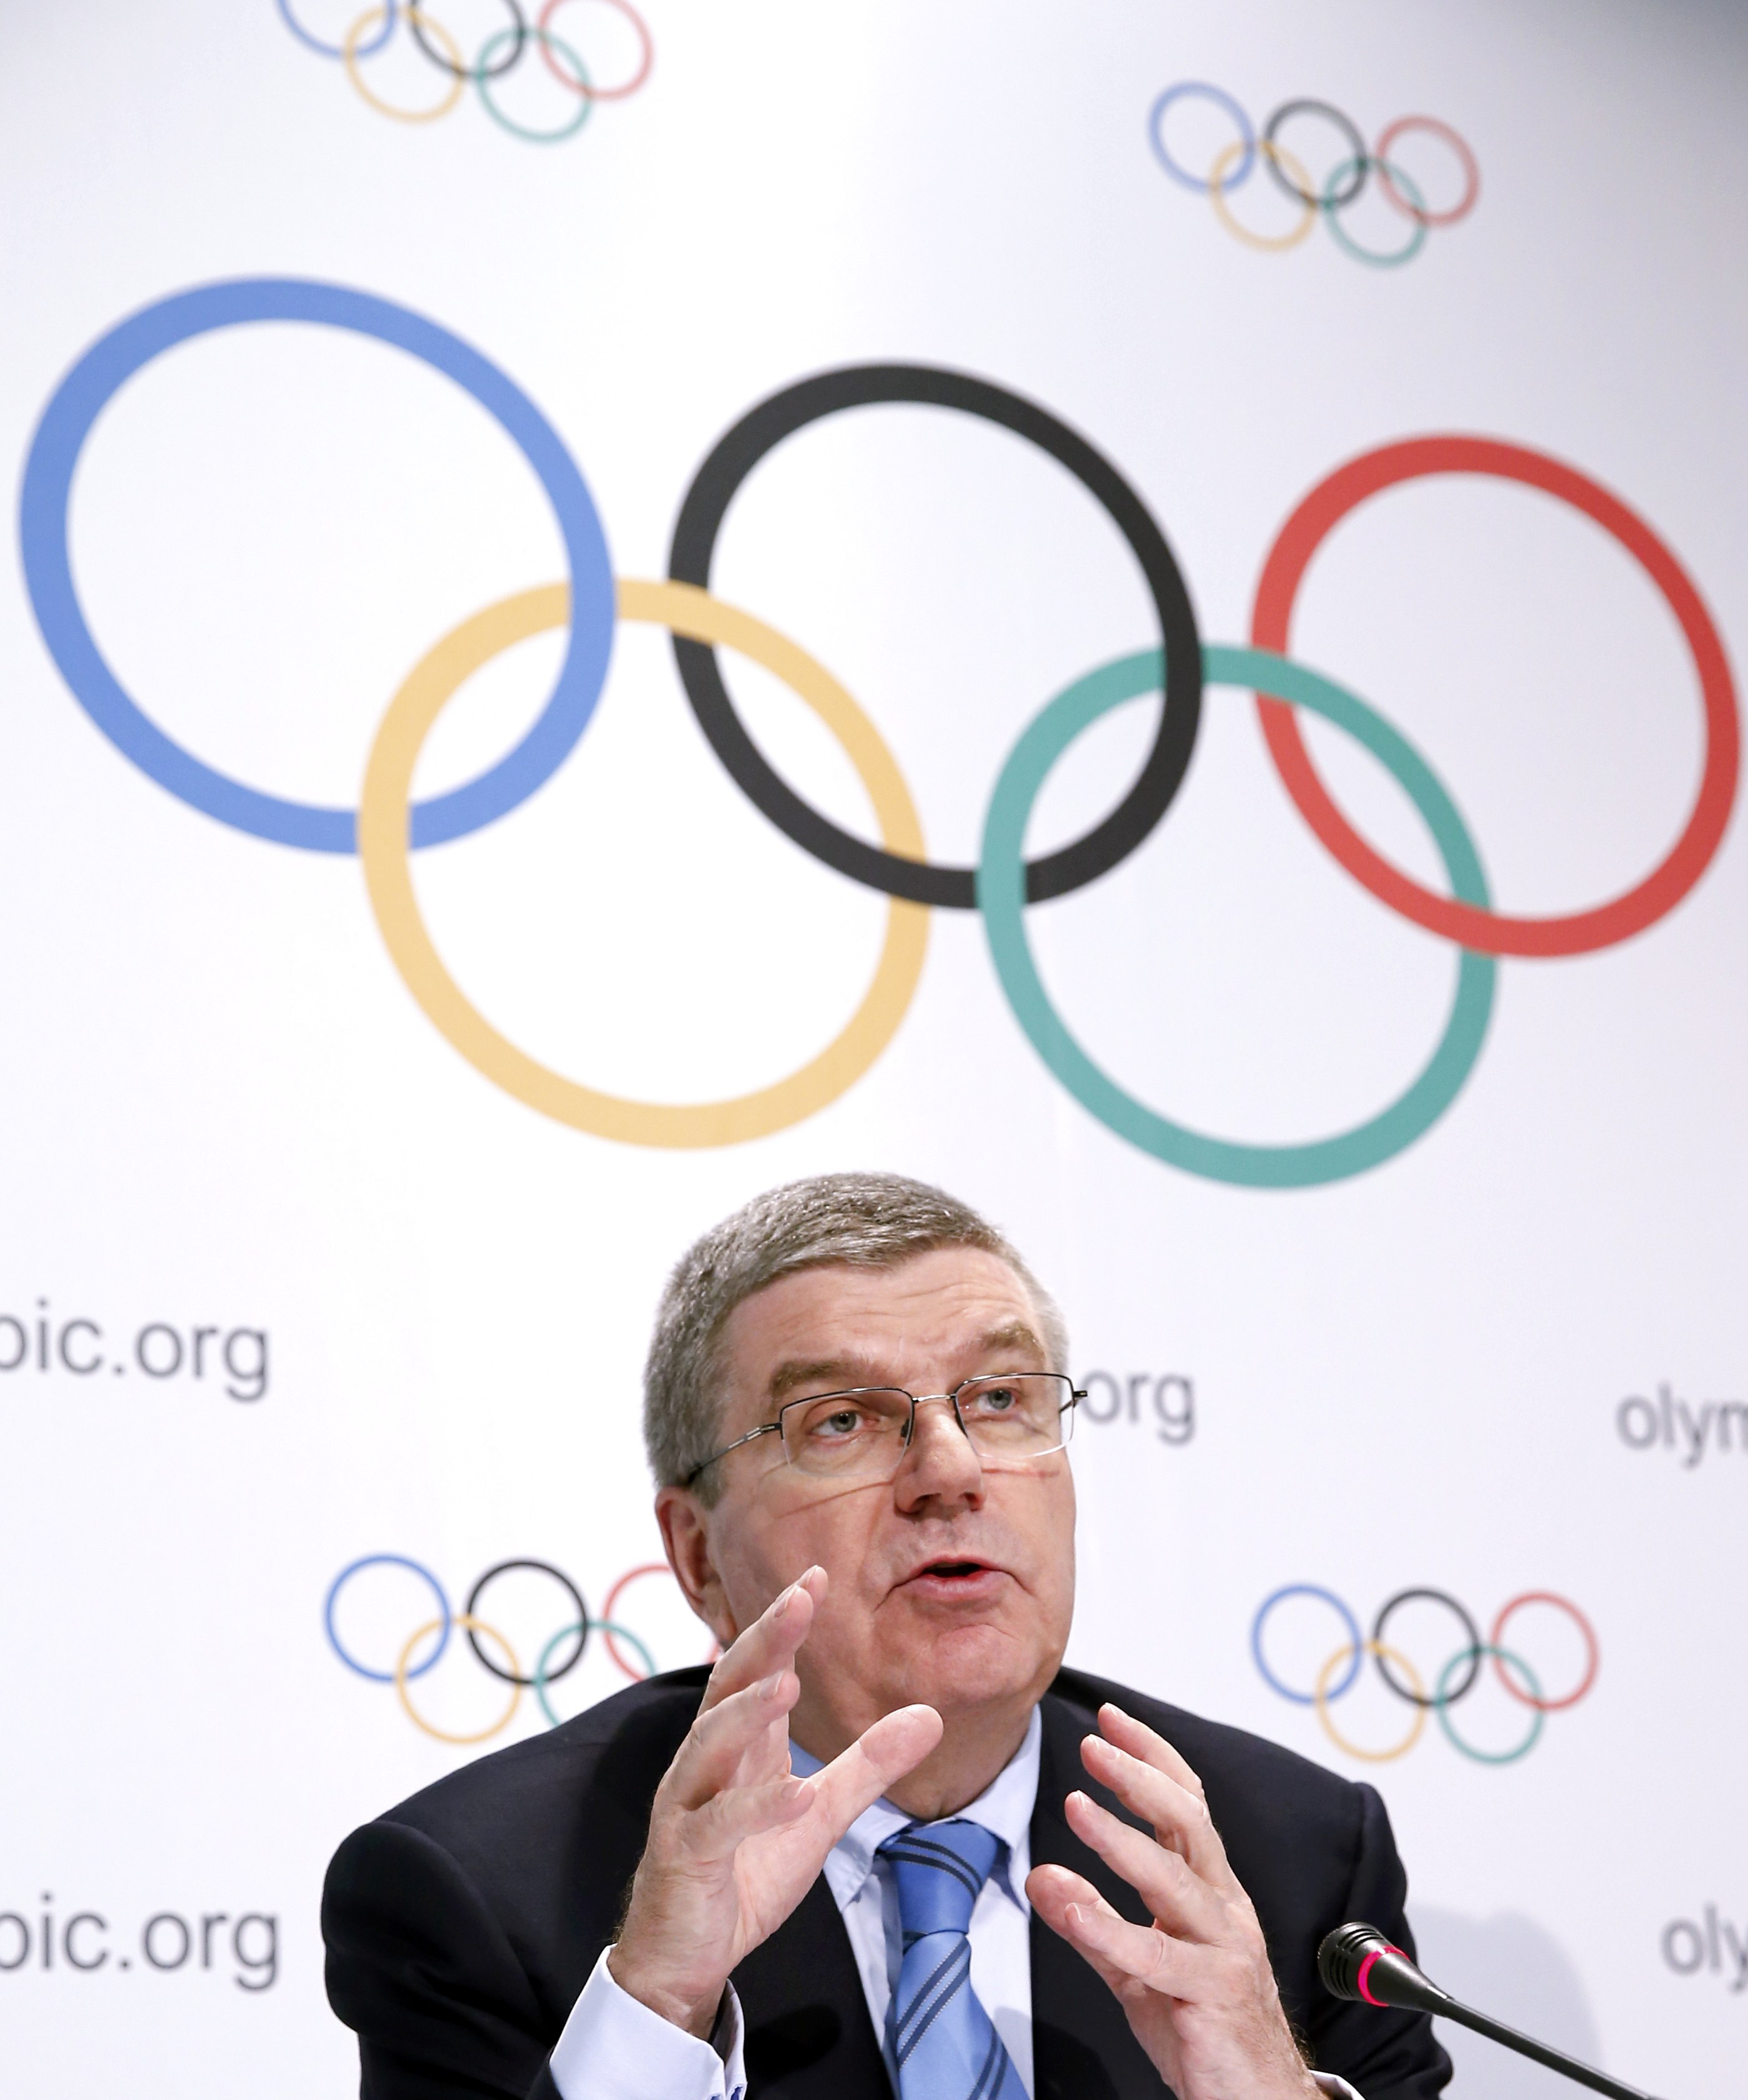 International Olympic Committee (IOC) President Thomas Bach addresses a news conference in Lausanne, Switzerland, December 10, 2015. Photo: Reuters